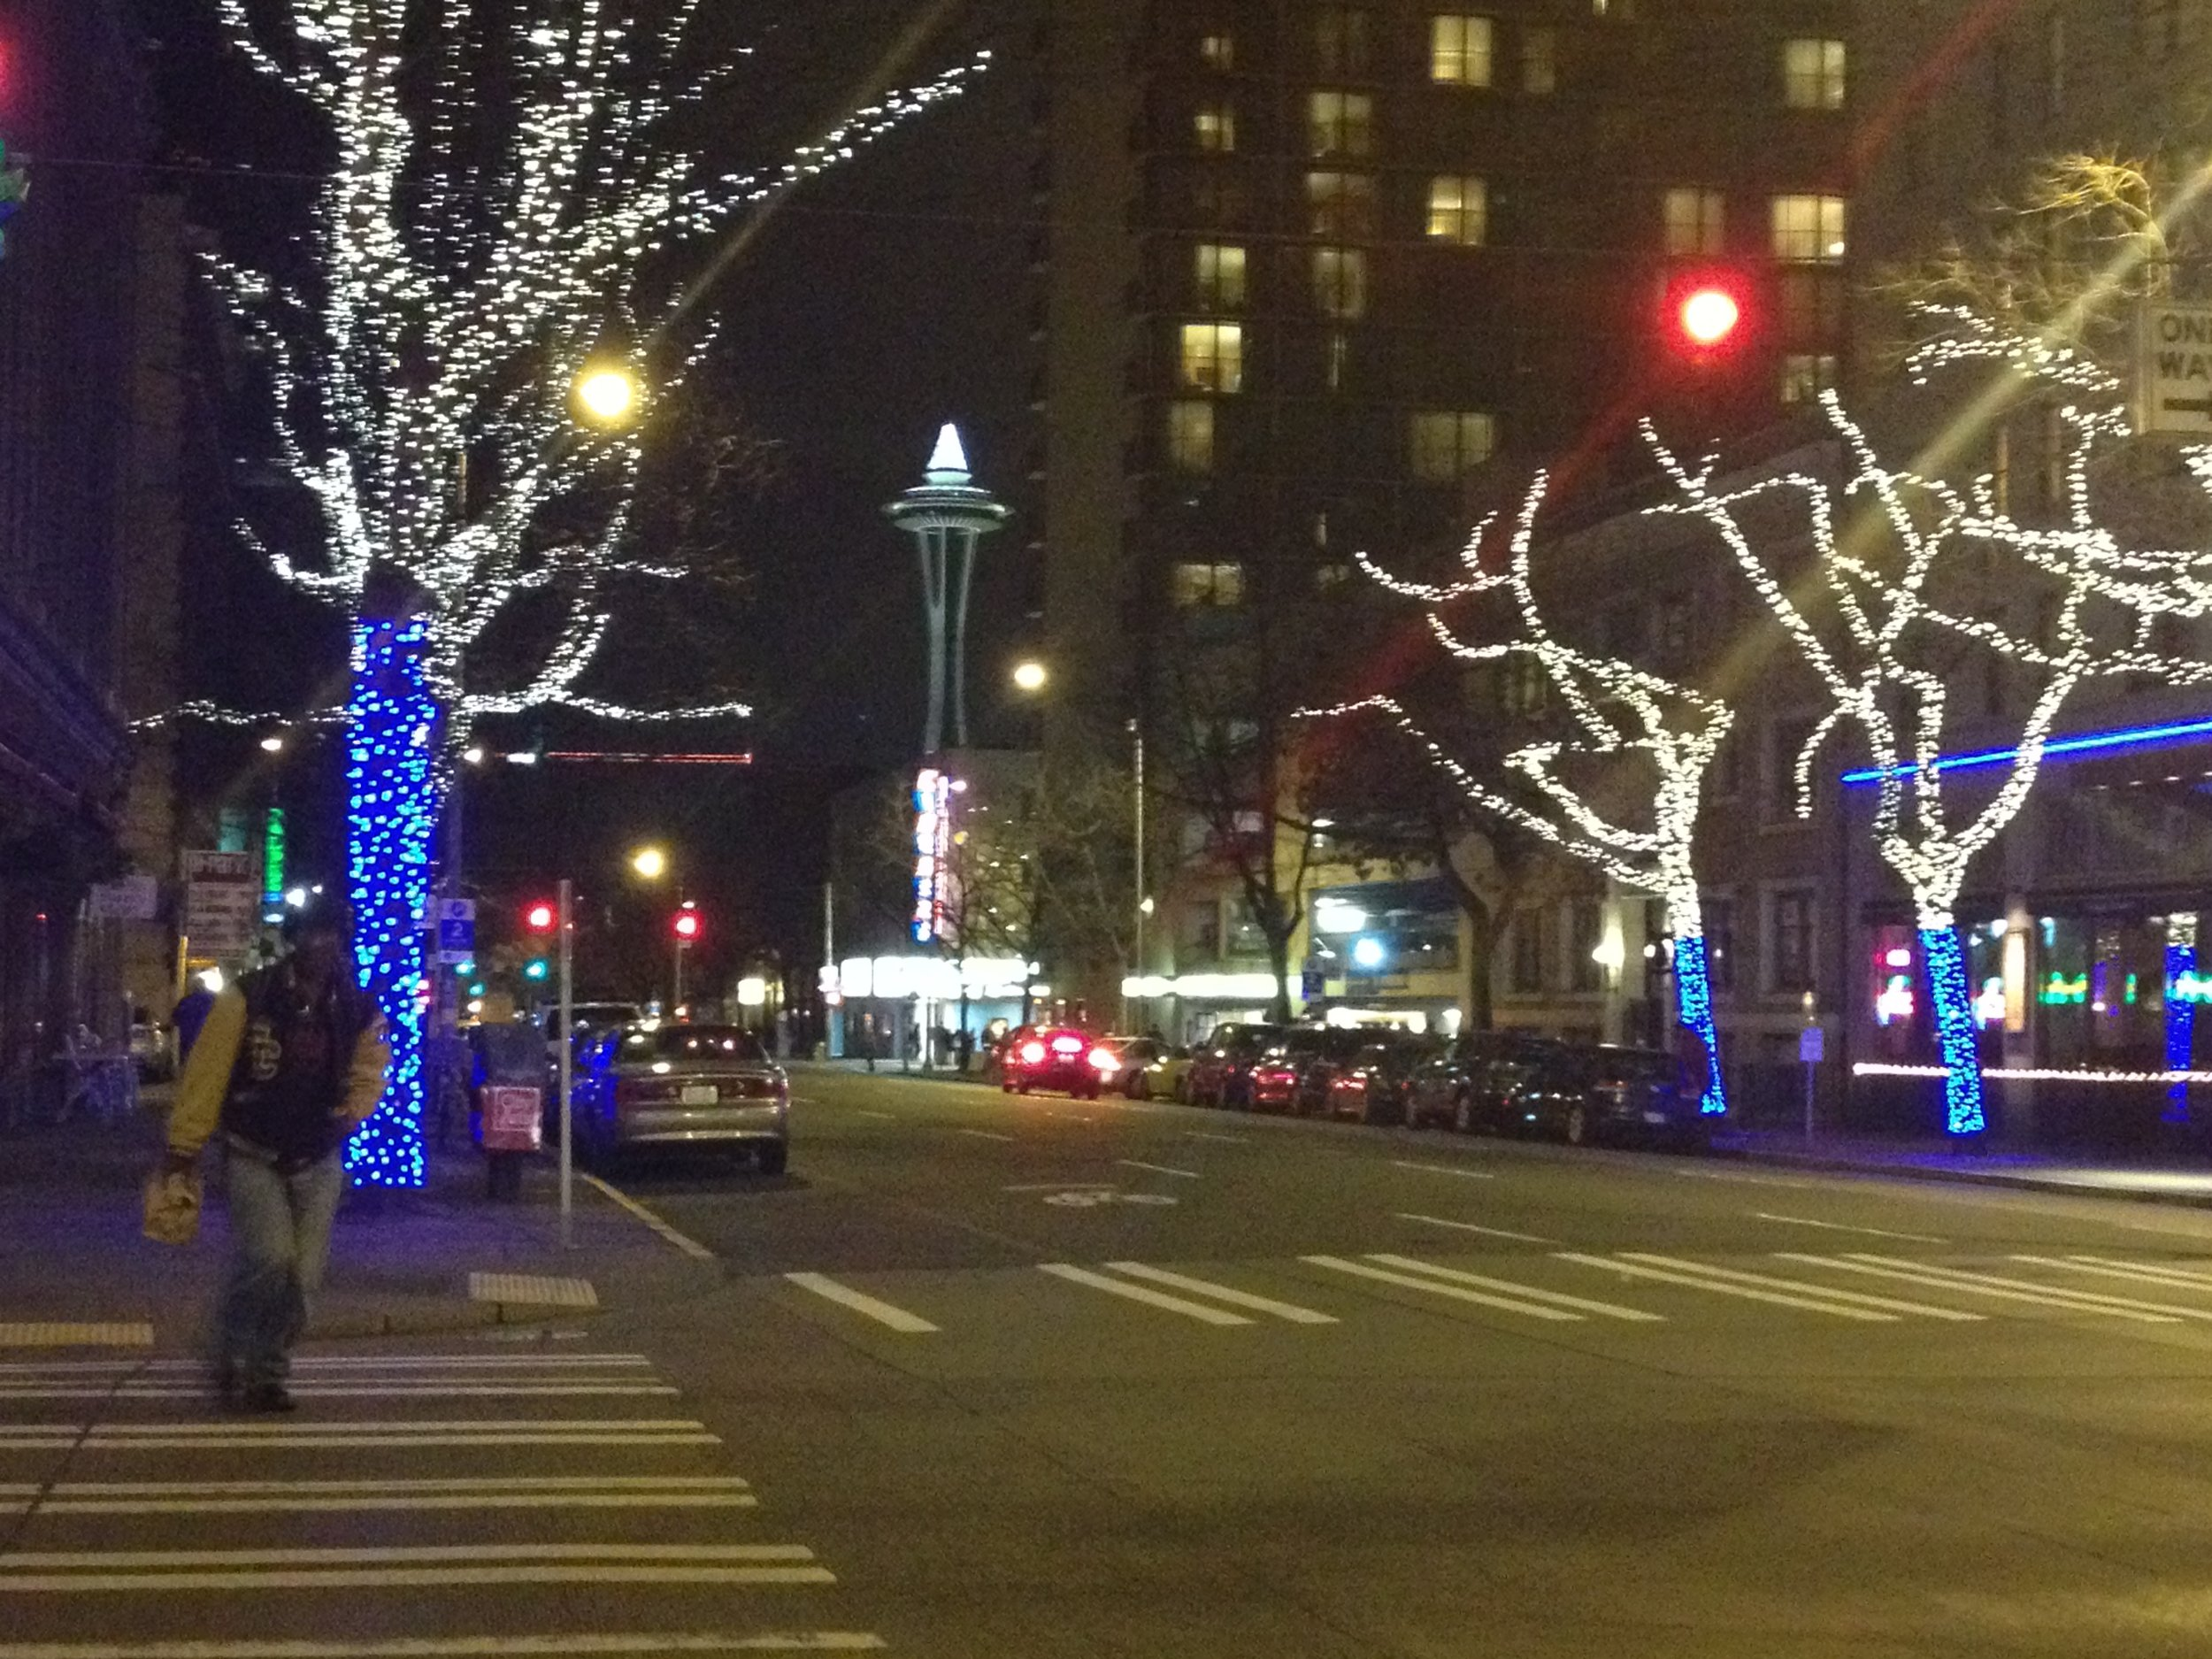 Seattle, getting ready for the holiday season.